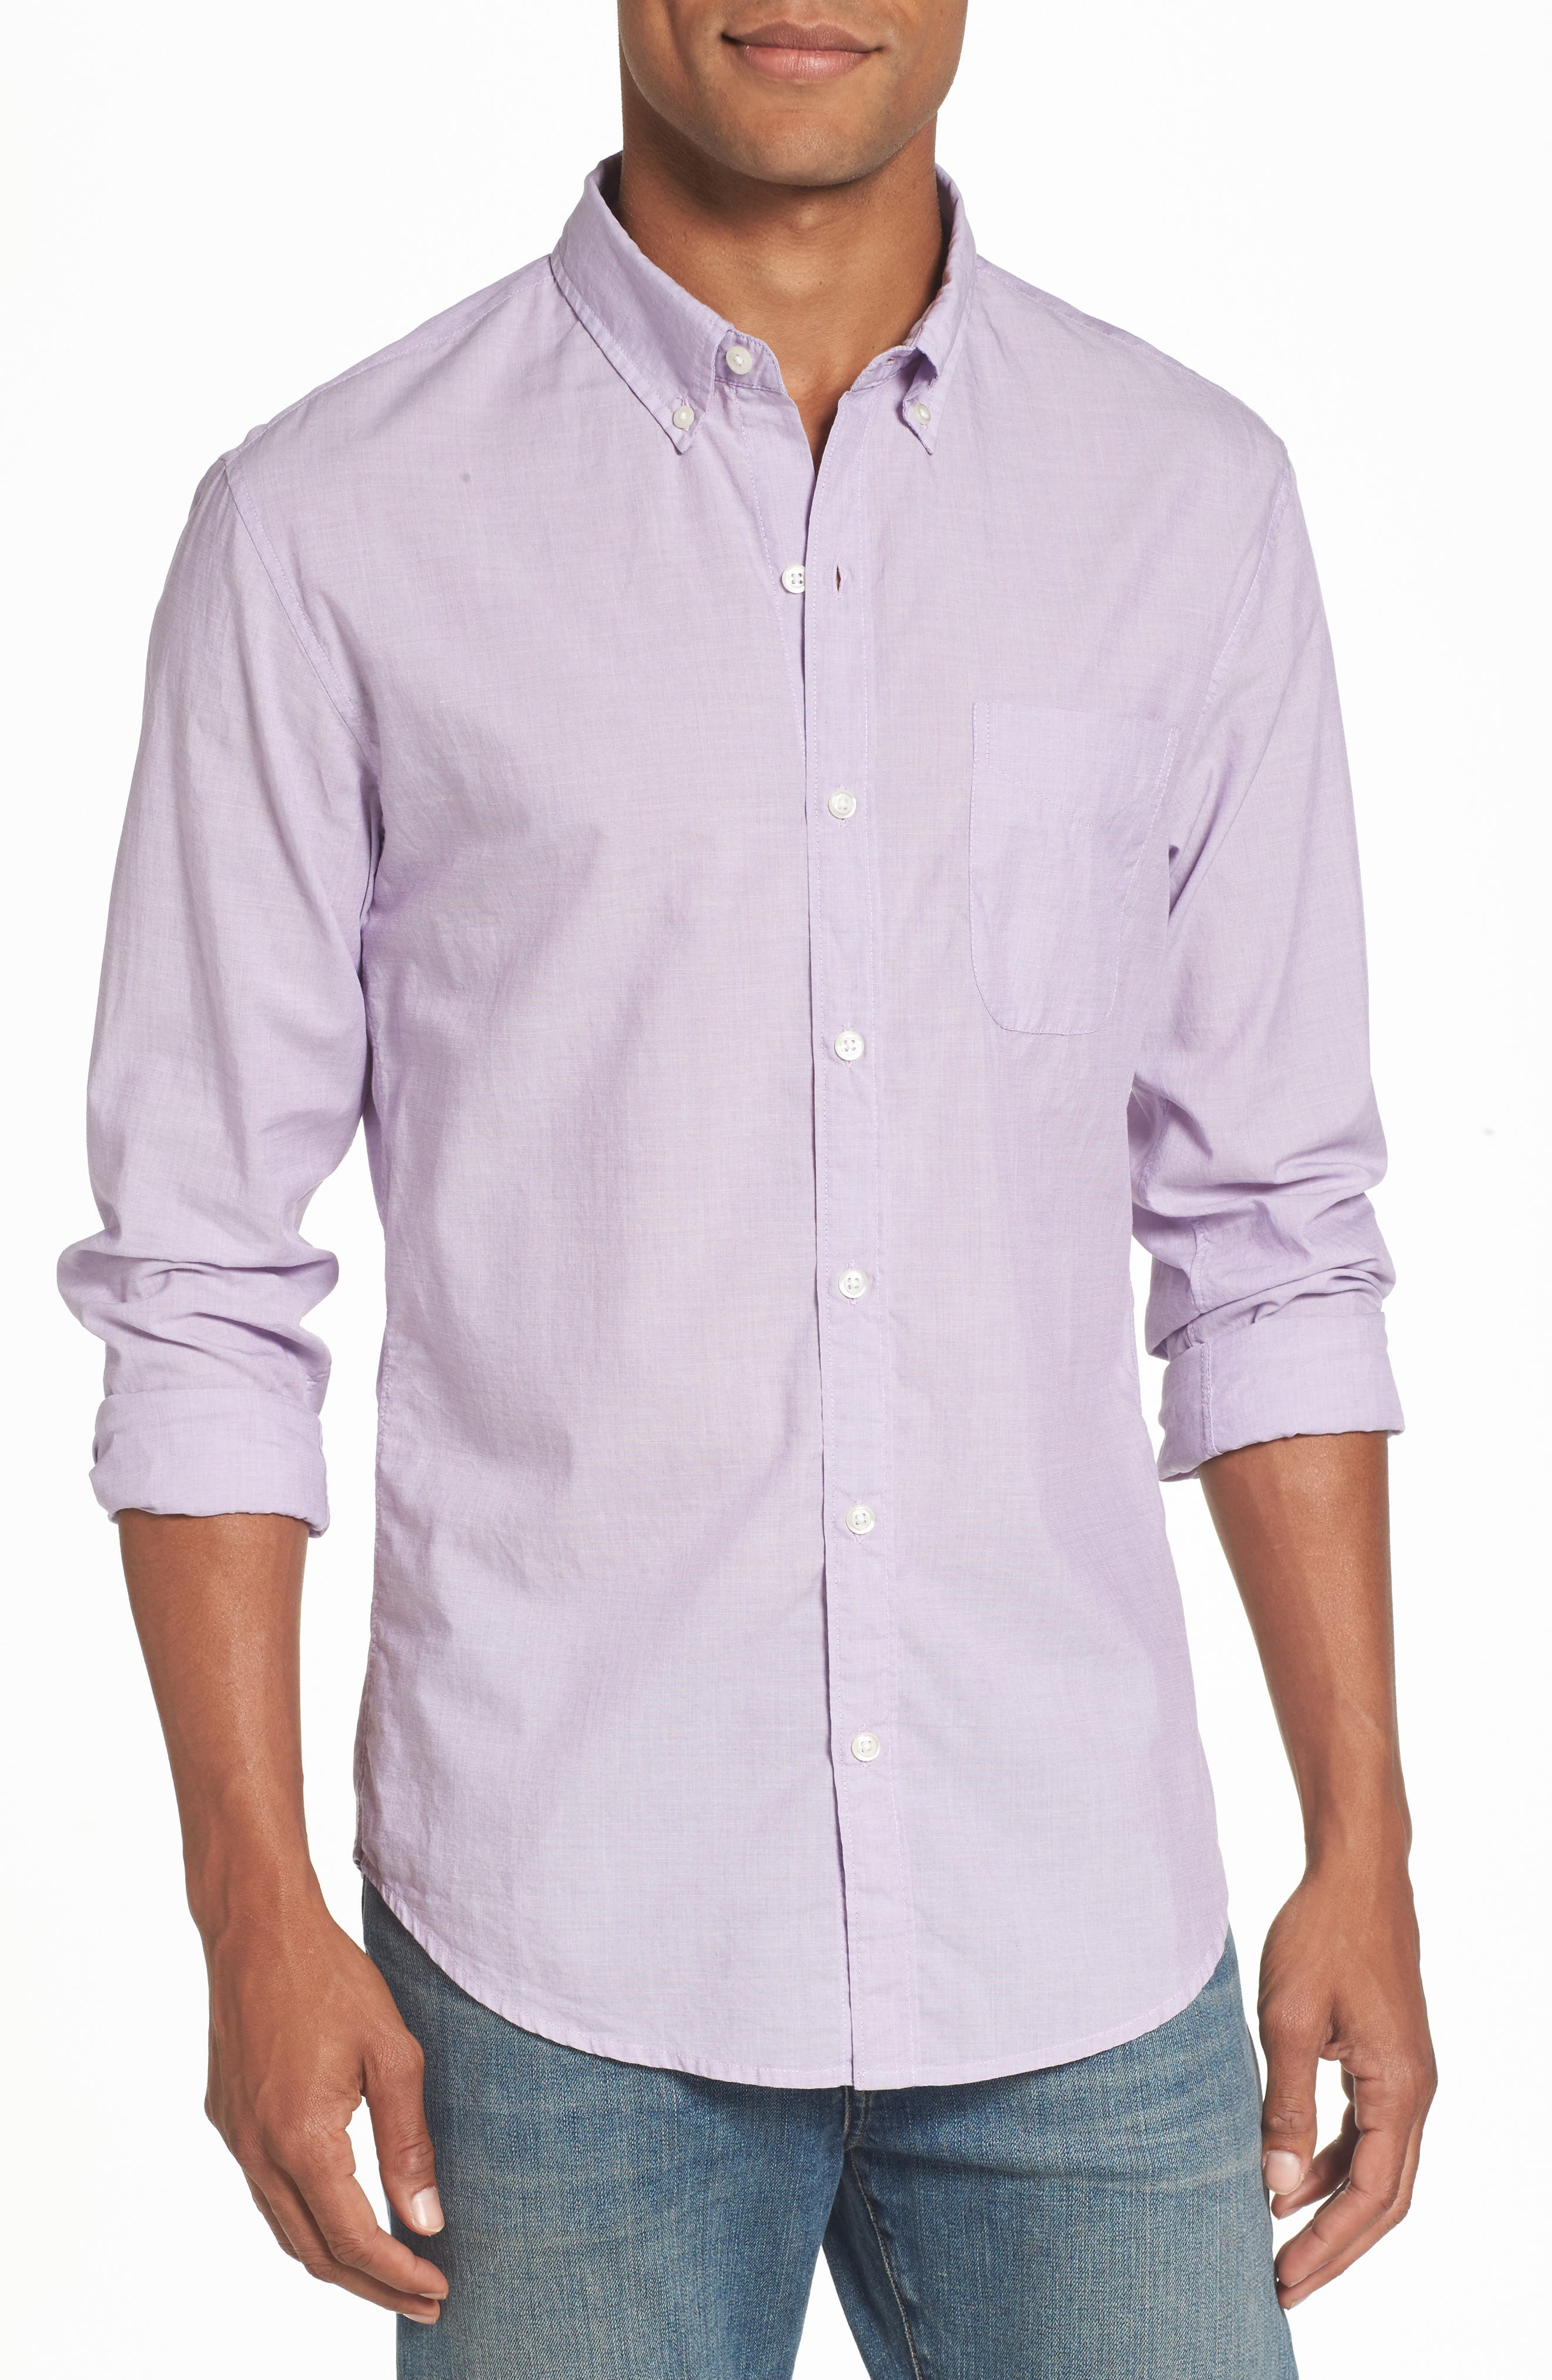 Main Image - Bonobos Slim Fit Summerweight Sport Shirt